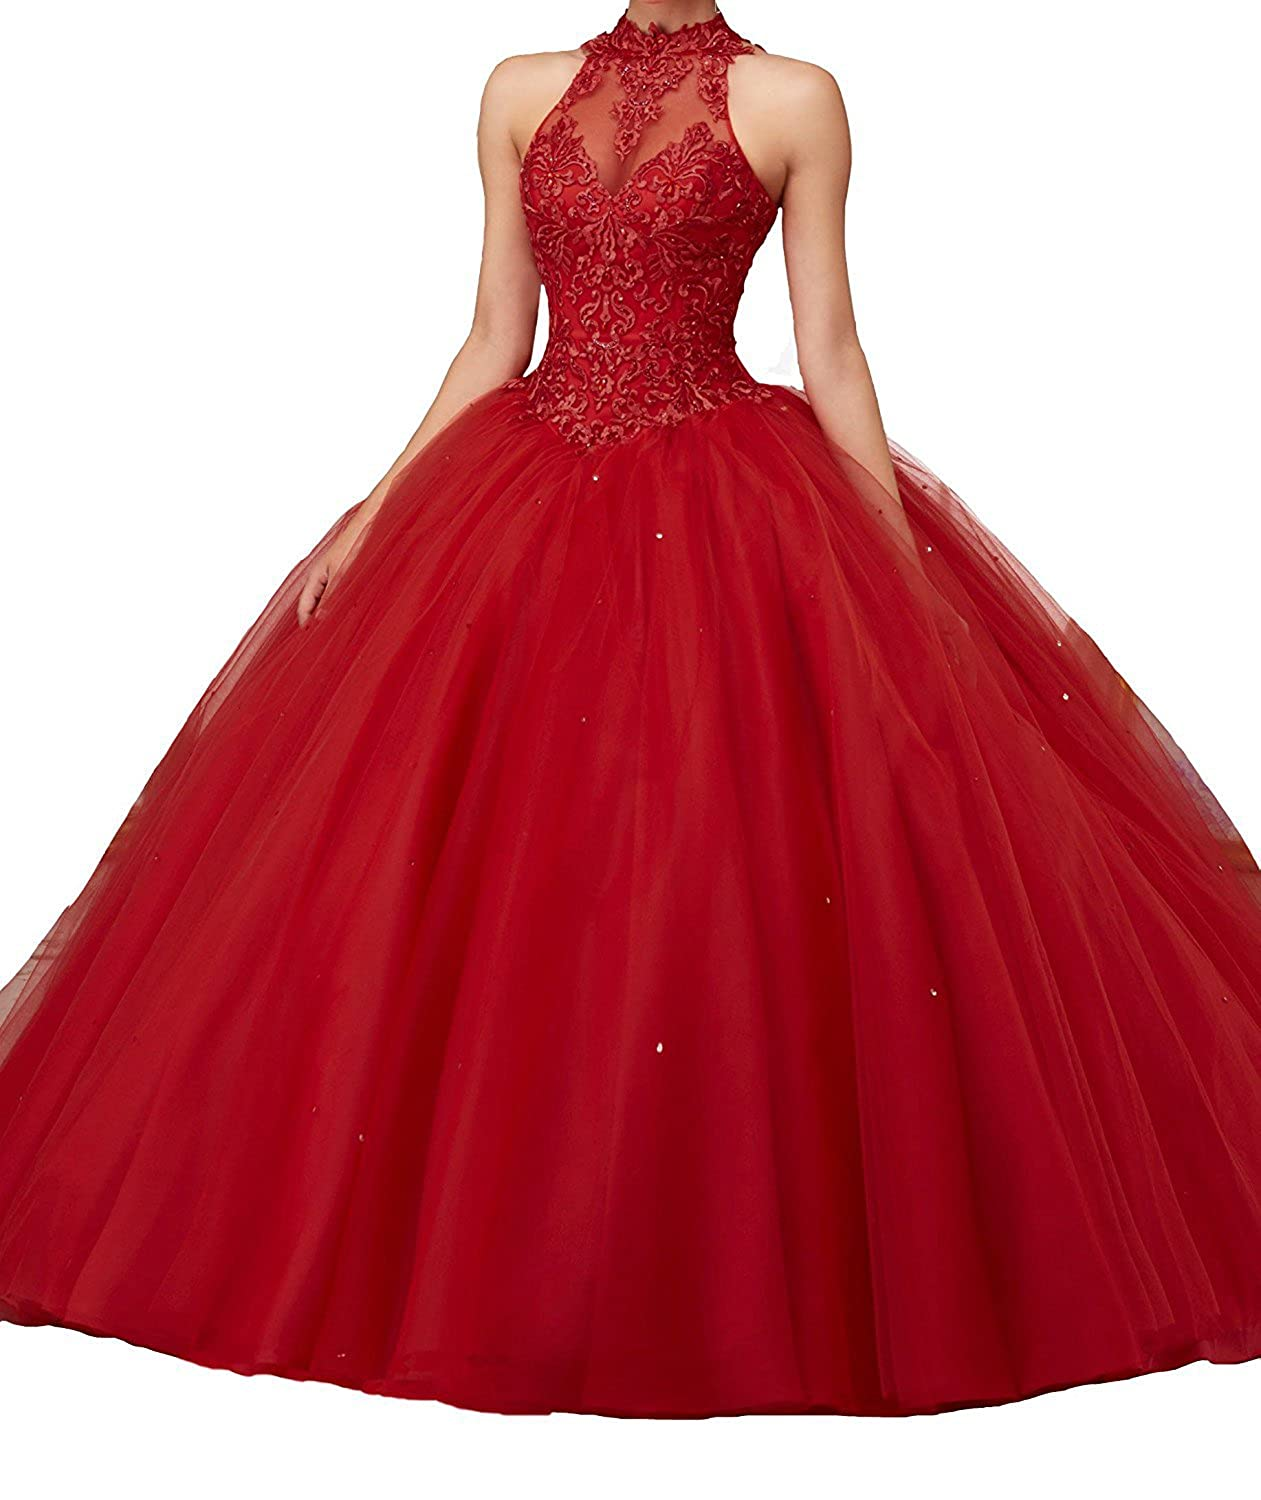 5cc39480 Amazon.com: Women's Lace Pageant Quinceanera Dresses Ball Gown Halter Prom  Evening Gowns: Clothing